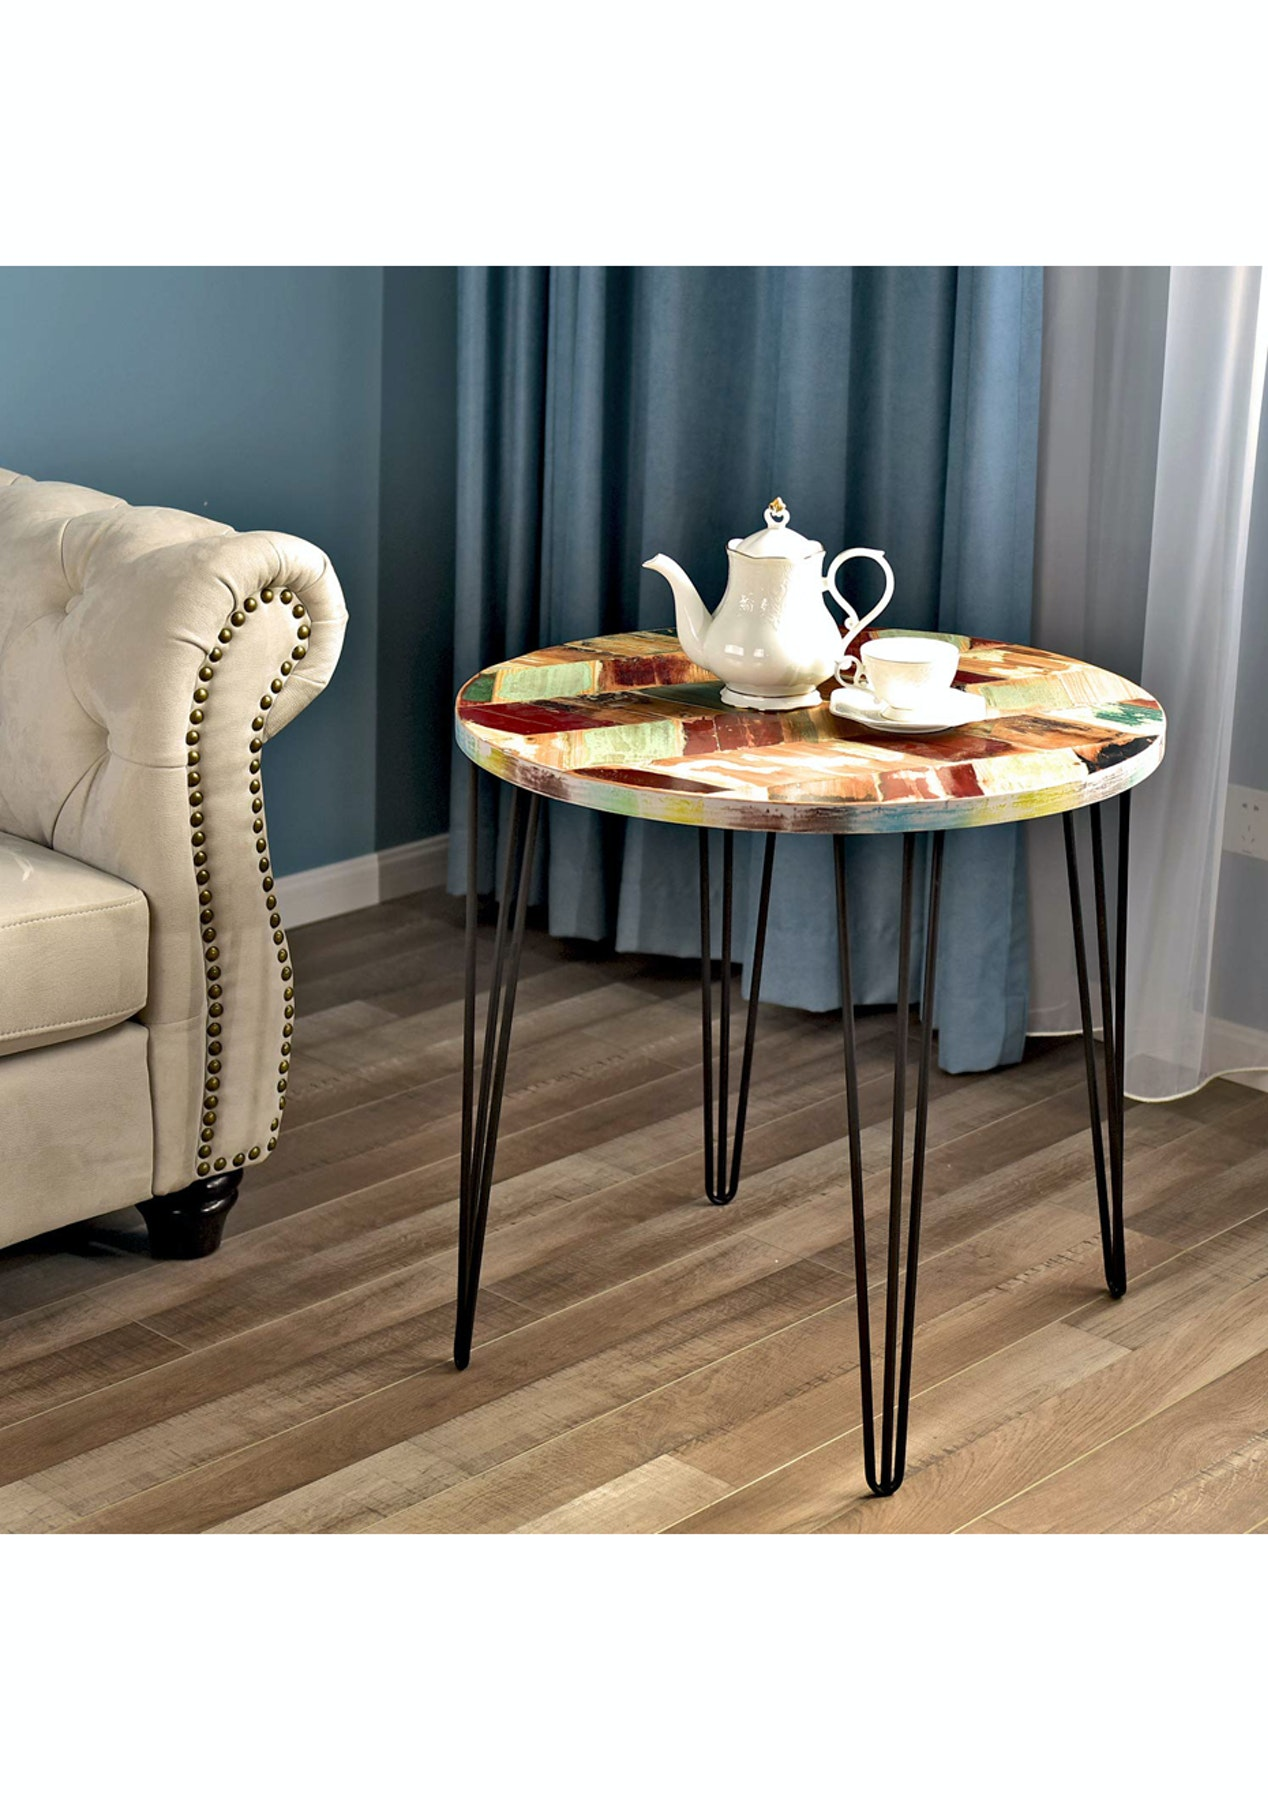 40cm Hairpin Diy Table Legs Set Of 4 Mid Year Furniture Sale Onceit